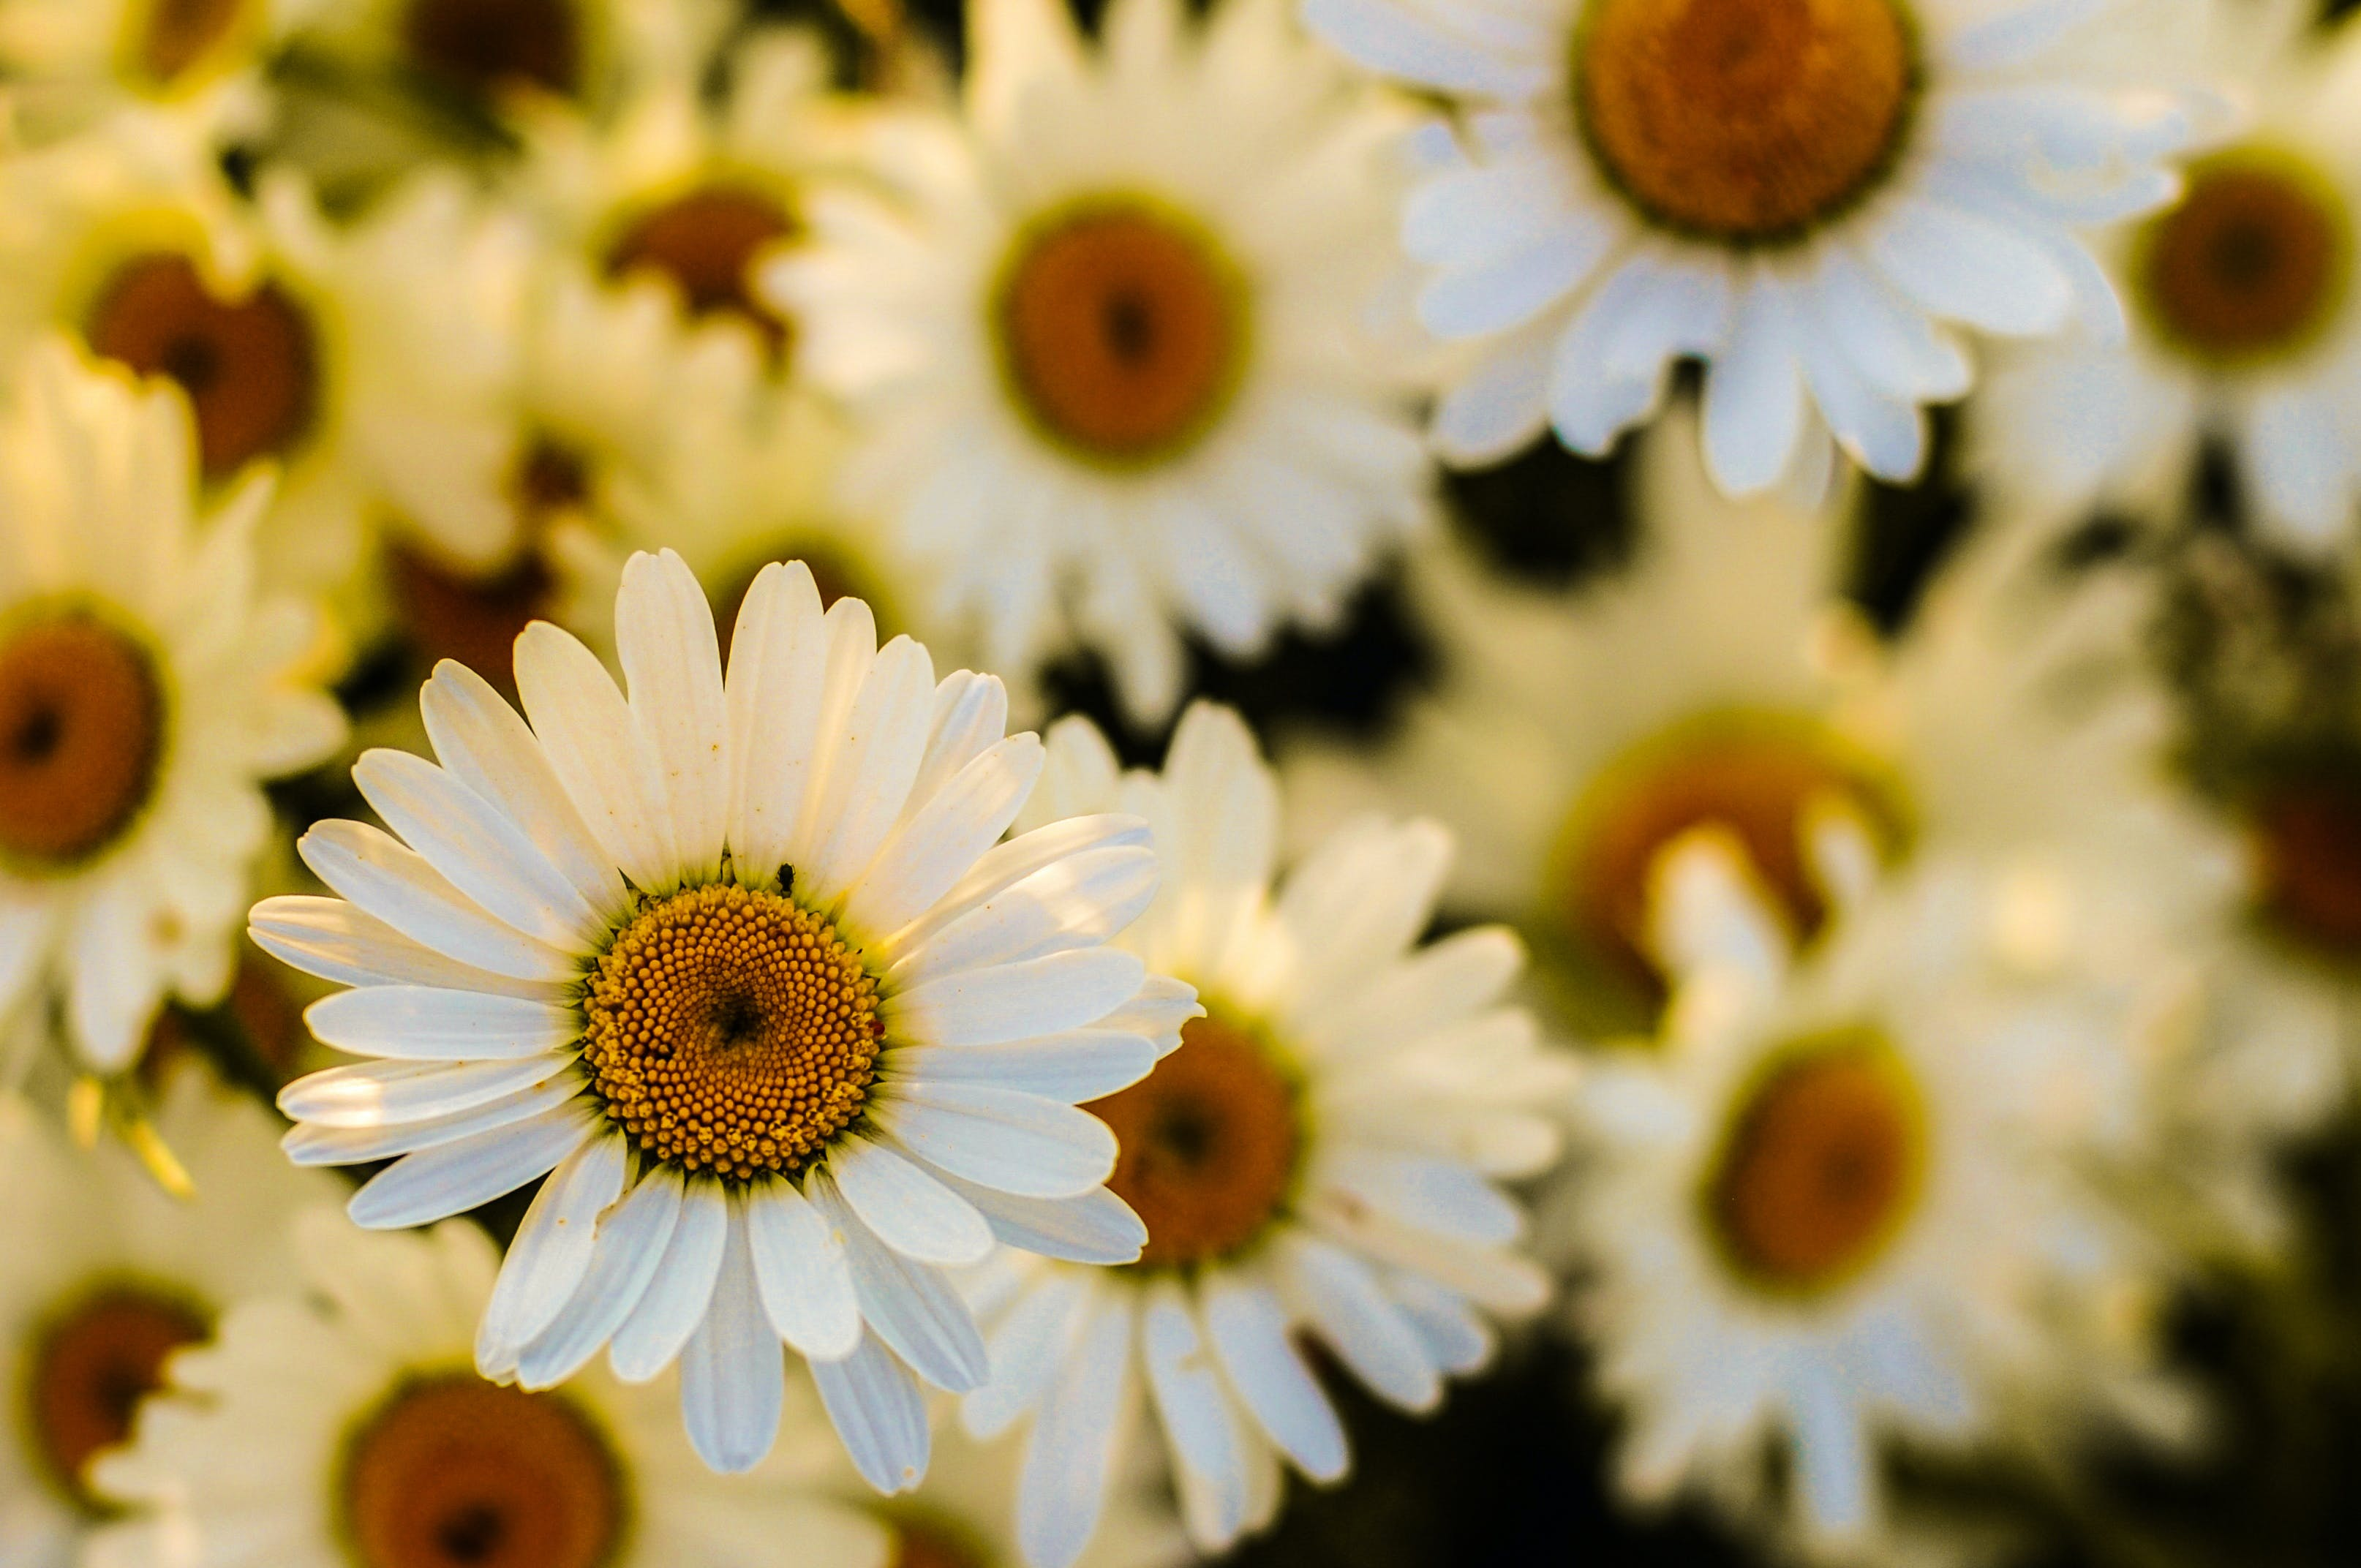 Free stock photo of flowers, marguerites, oxeye daisies, flora